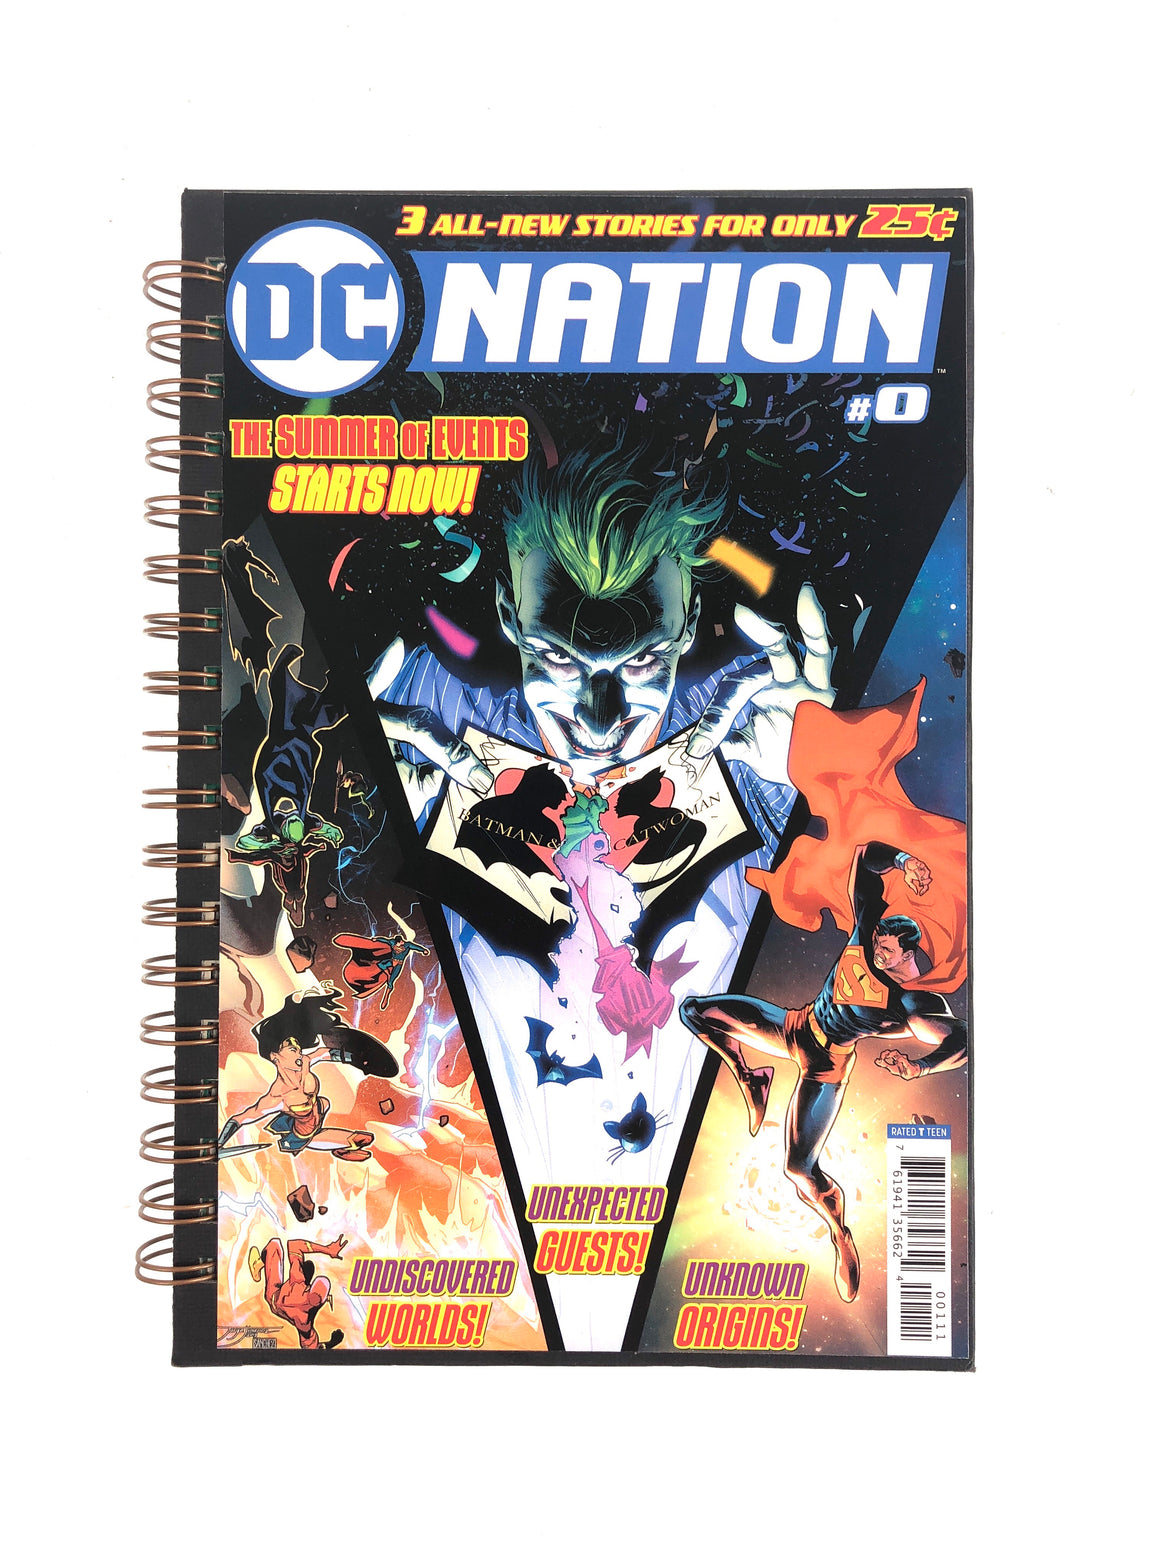 DC Nation #0 Comic Journal-Red Barn Collections